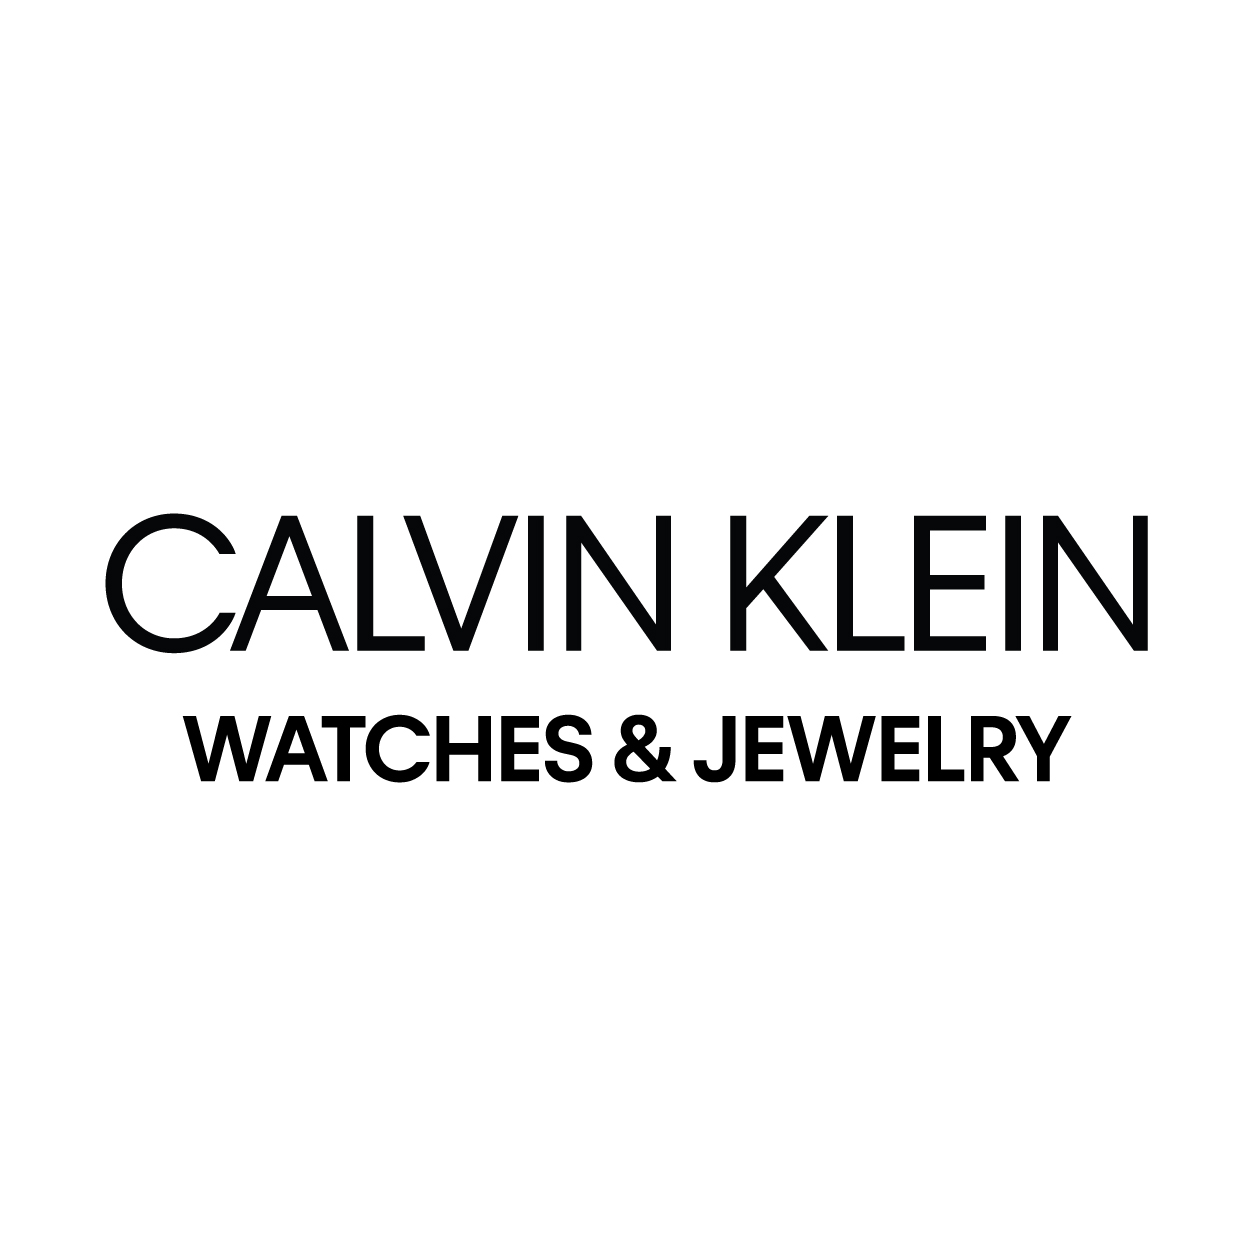 Calvin Klein Watches + Jewelry